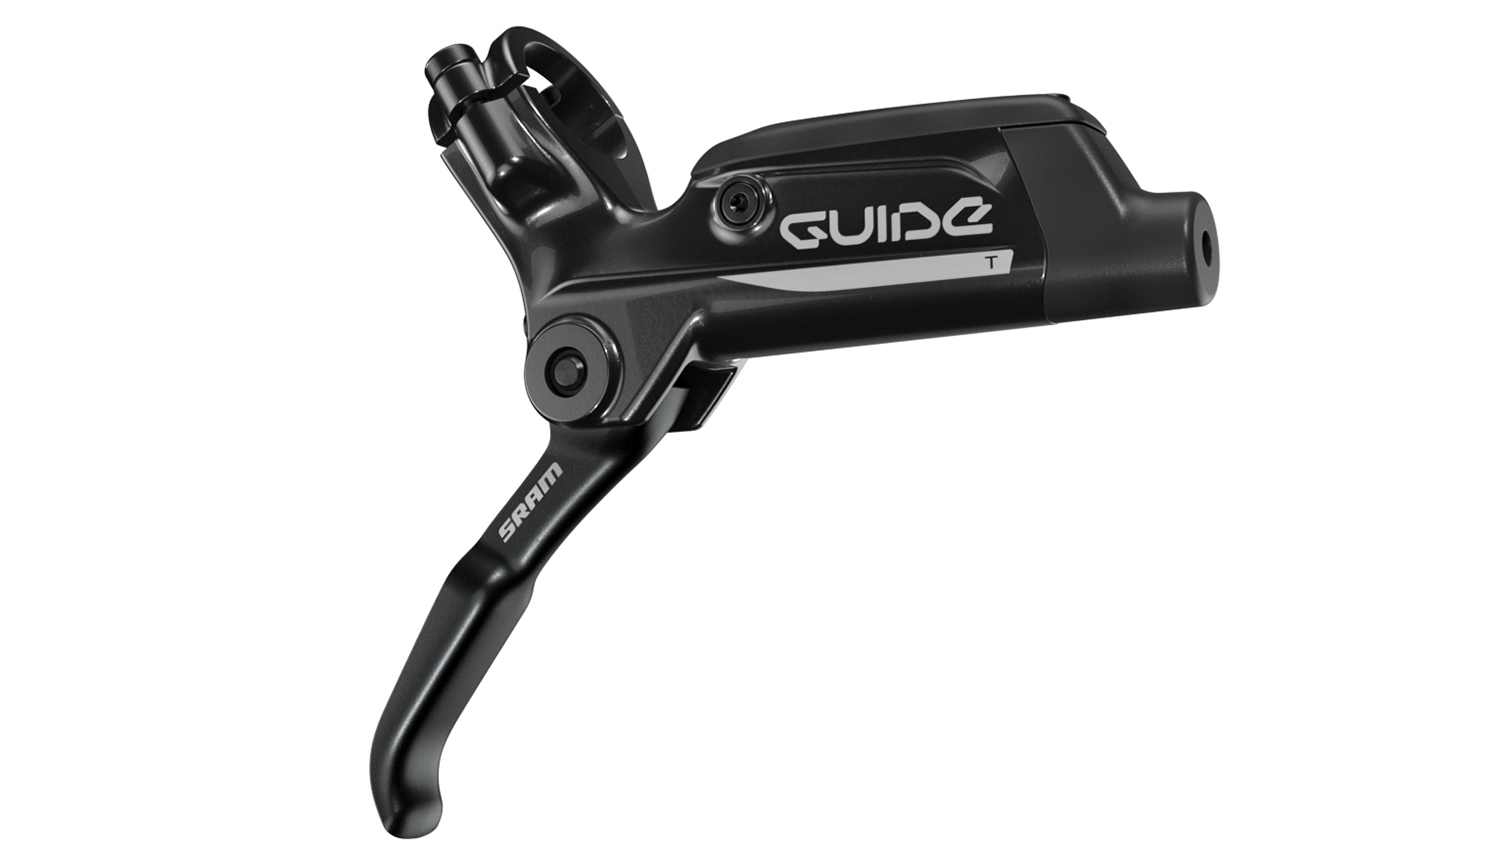 Introducing the Budget SRAM Guide T 4-Piston Disc Brake